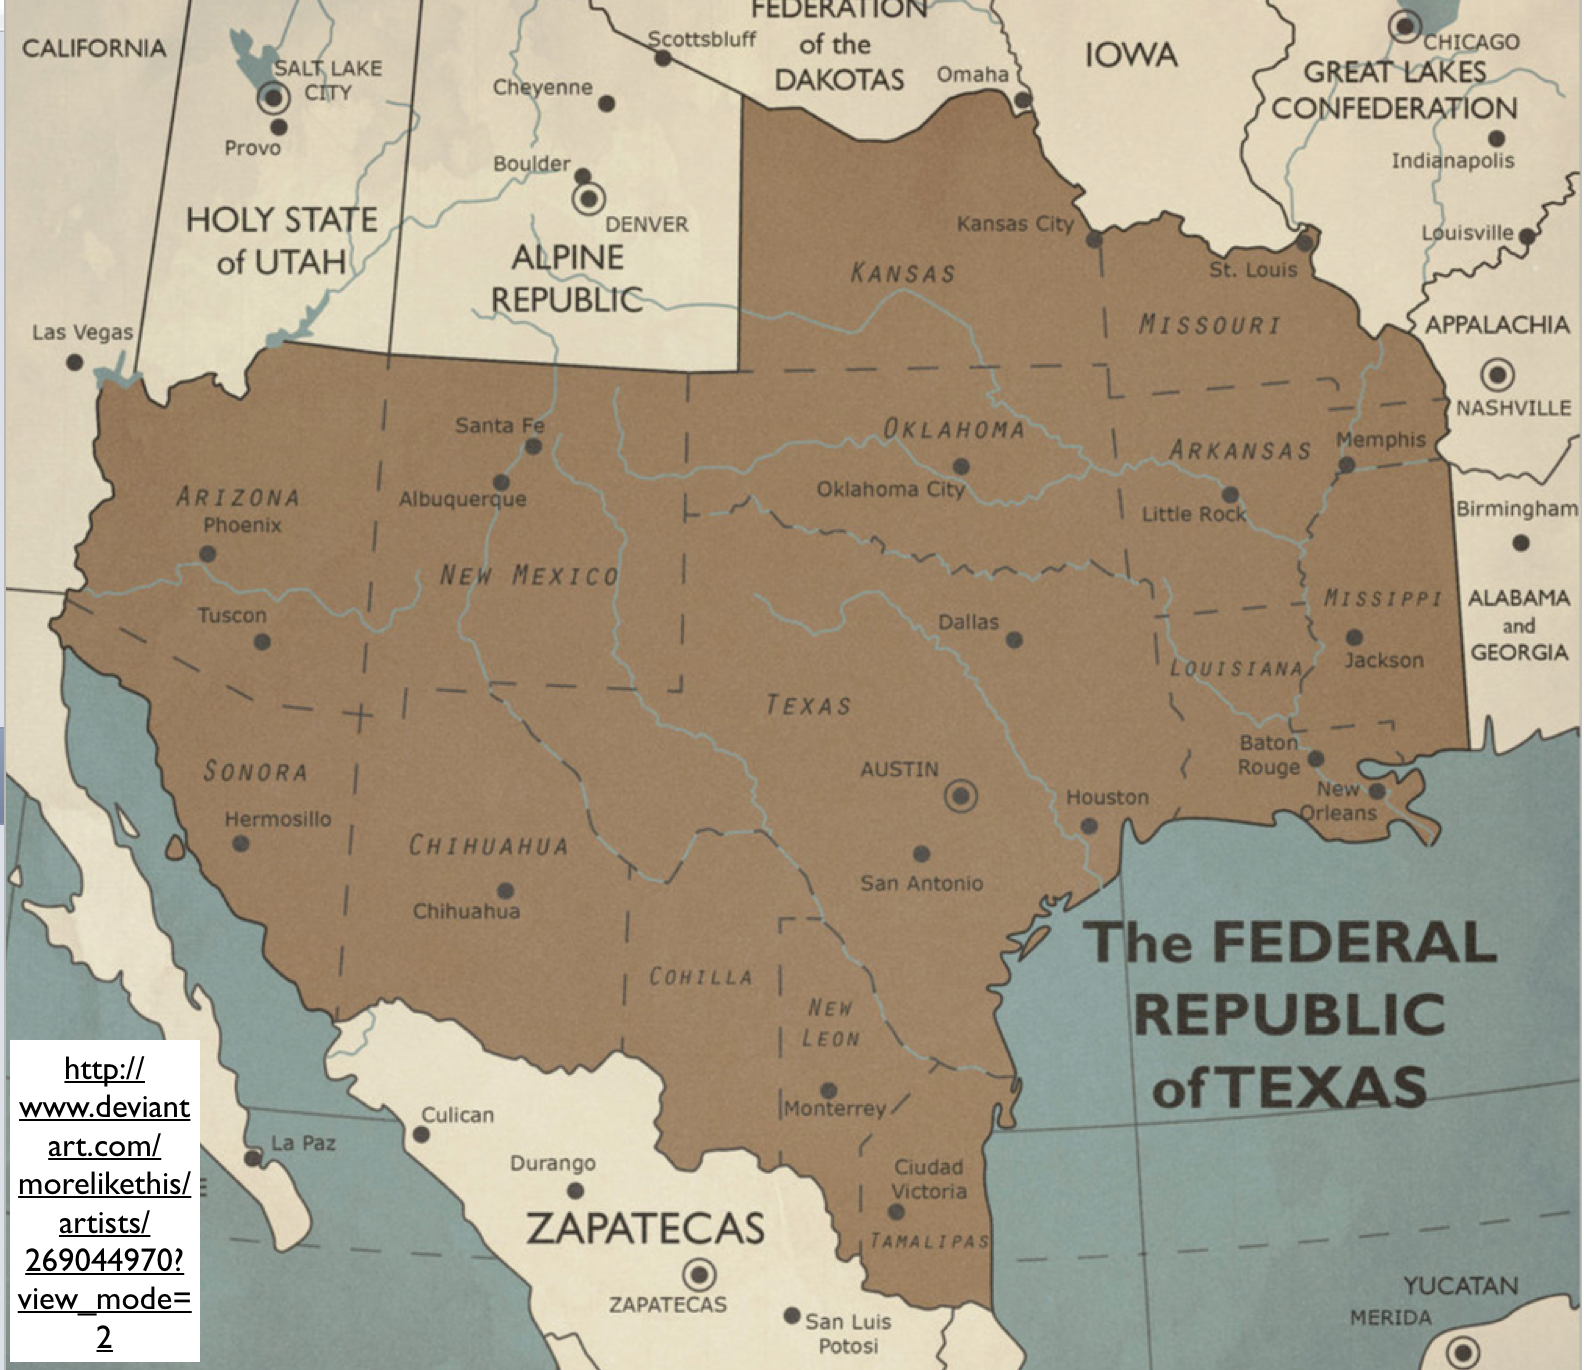 The Fantasy Political Maps Of DeviantART GeoCurrents - Texas political map